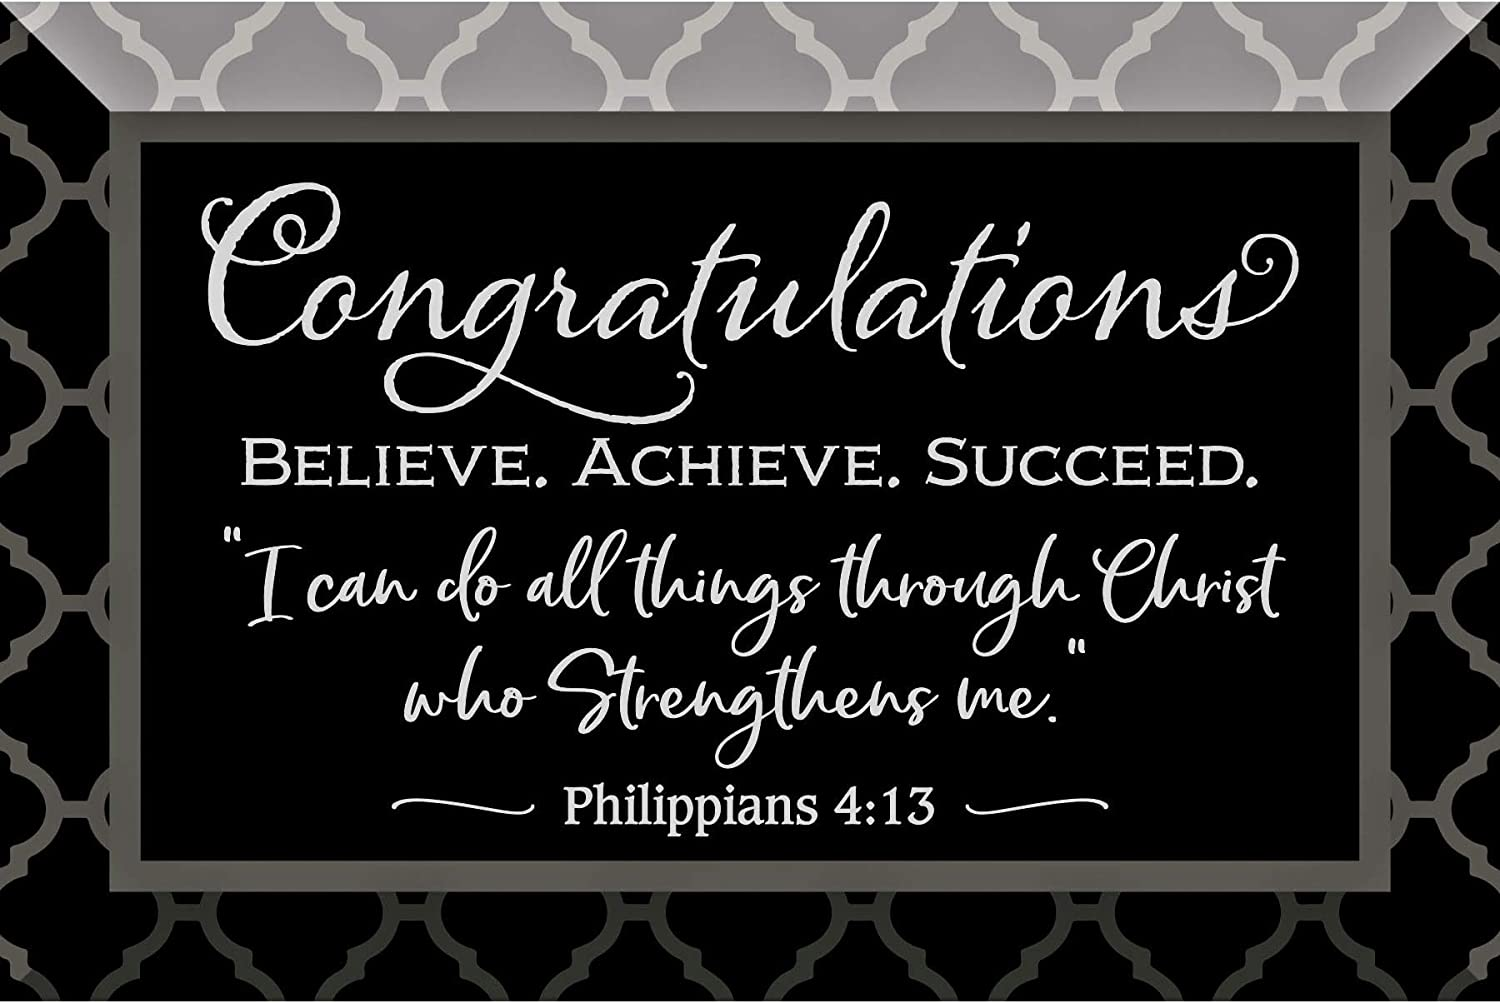 Congratulations Glass Plaque with Inspiring Quotes 4x6 - Classic Tabletop Decoration | Easel Back | Believe. Achieve. Succeed. I can do All Things Through Christ who Strengthens me. Phillipians 4:13